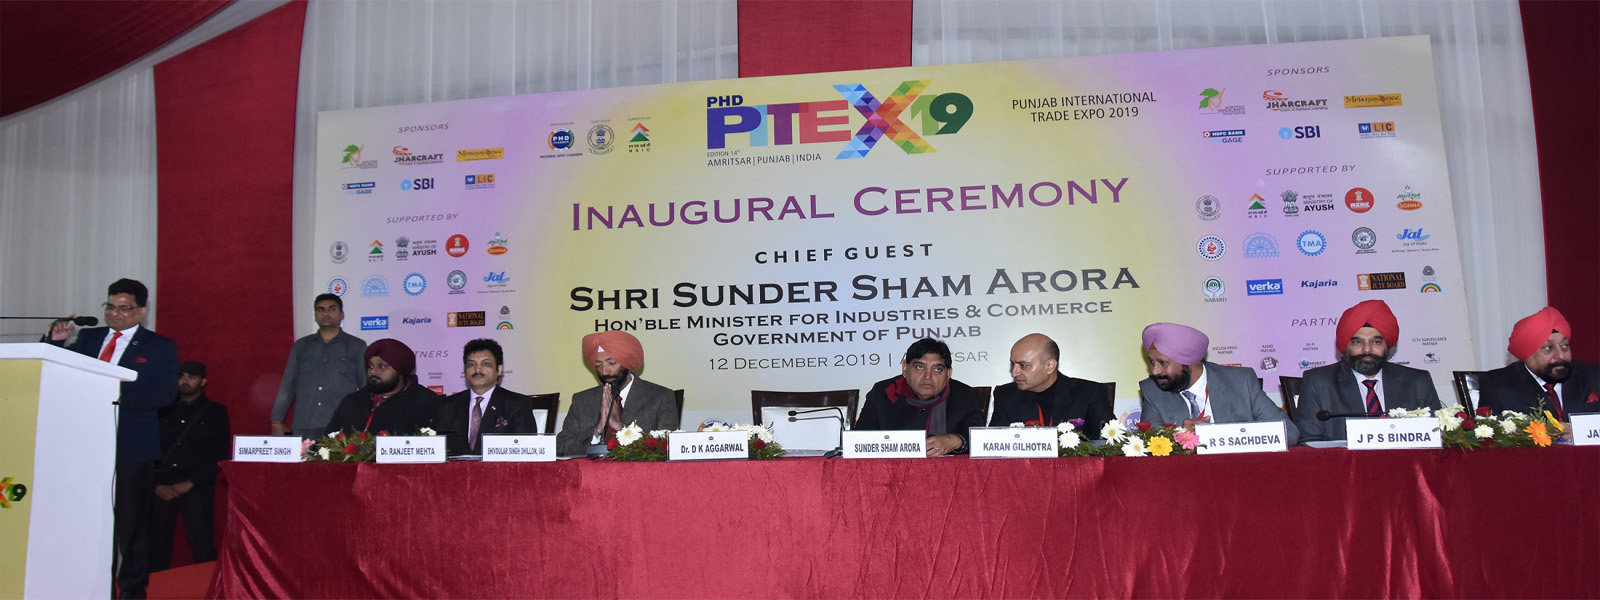 PITEX-2019 – Inaugural Ceremony